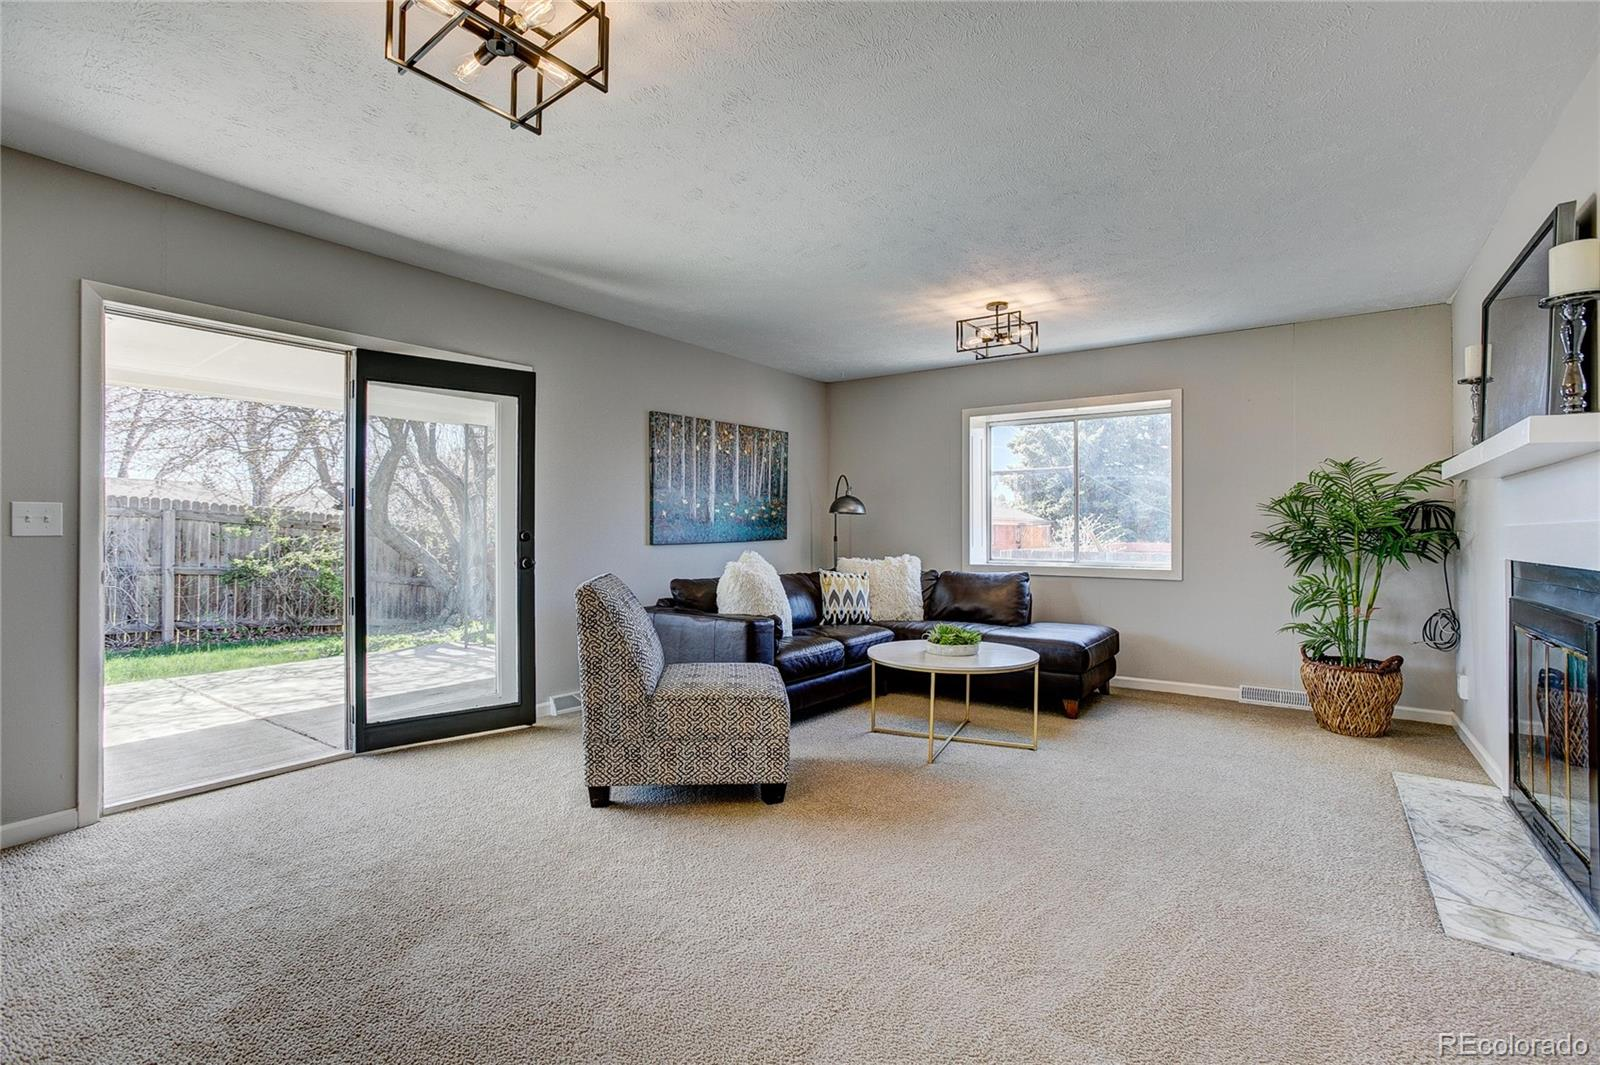 MLS# 9710462 - 11 - 1250 W 7th Ave Dr, Broomfield, CO 80020